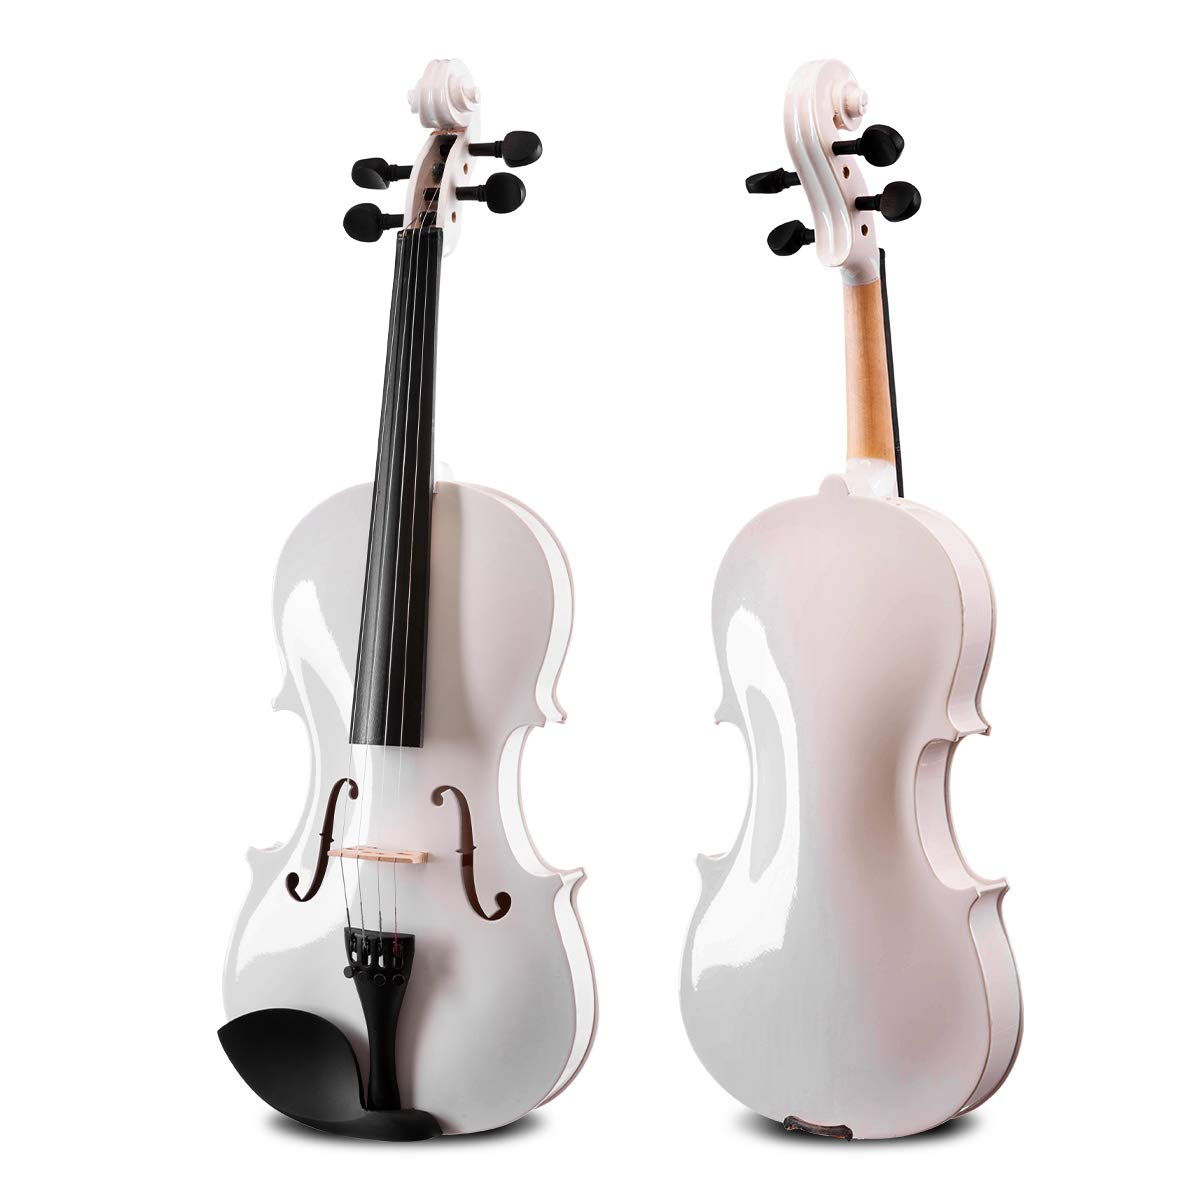 ARTALL 4/4 Handmade Student Acoustic Violin Beginner Pack with Bow, Hard Case, Chin Rest, Tuner, Spare Strings, Rosin and Bridge, Glossy White by ARTALL (Image #3)